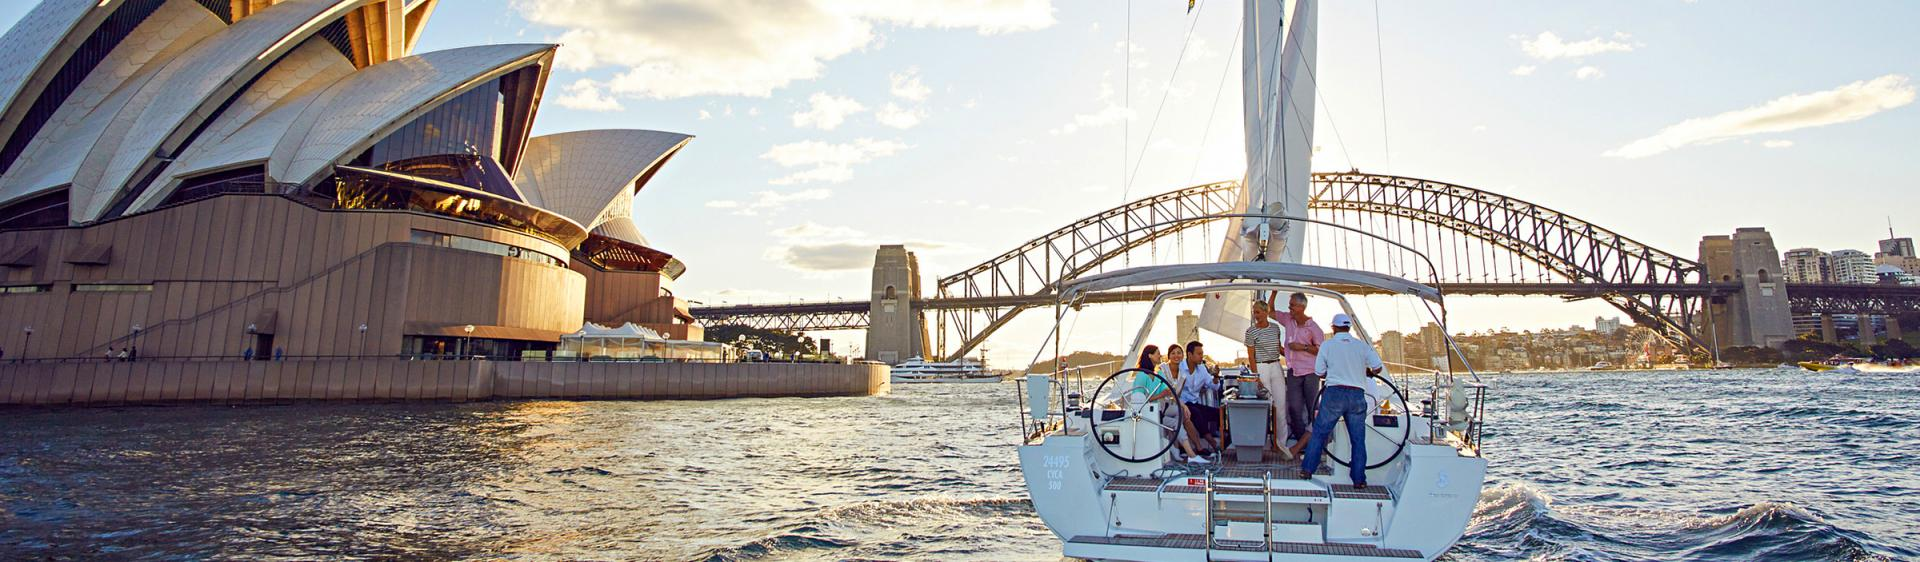 Segeln am Sydney Harbour